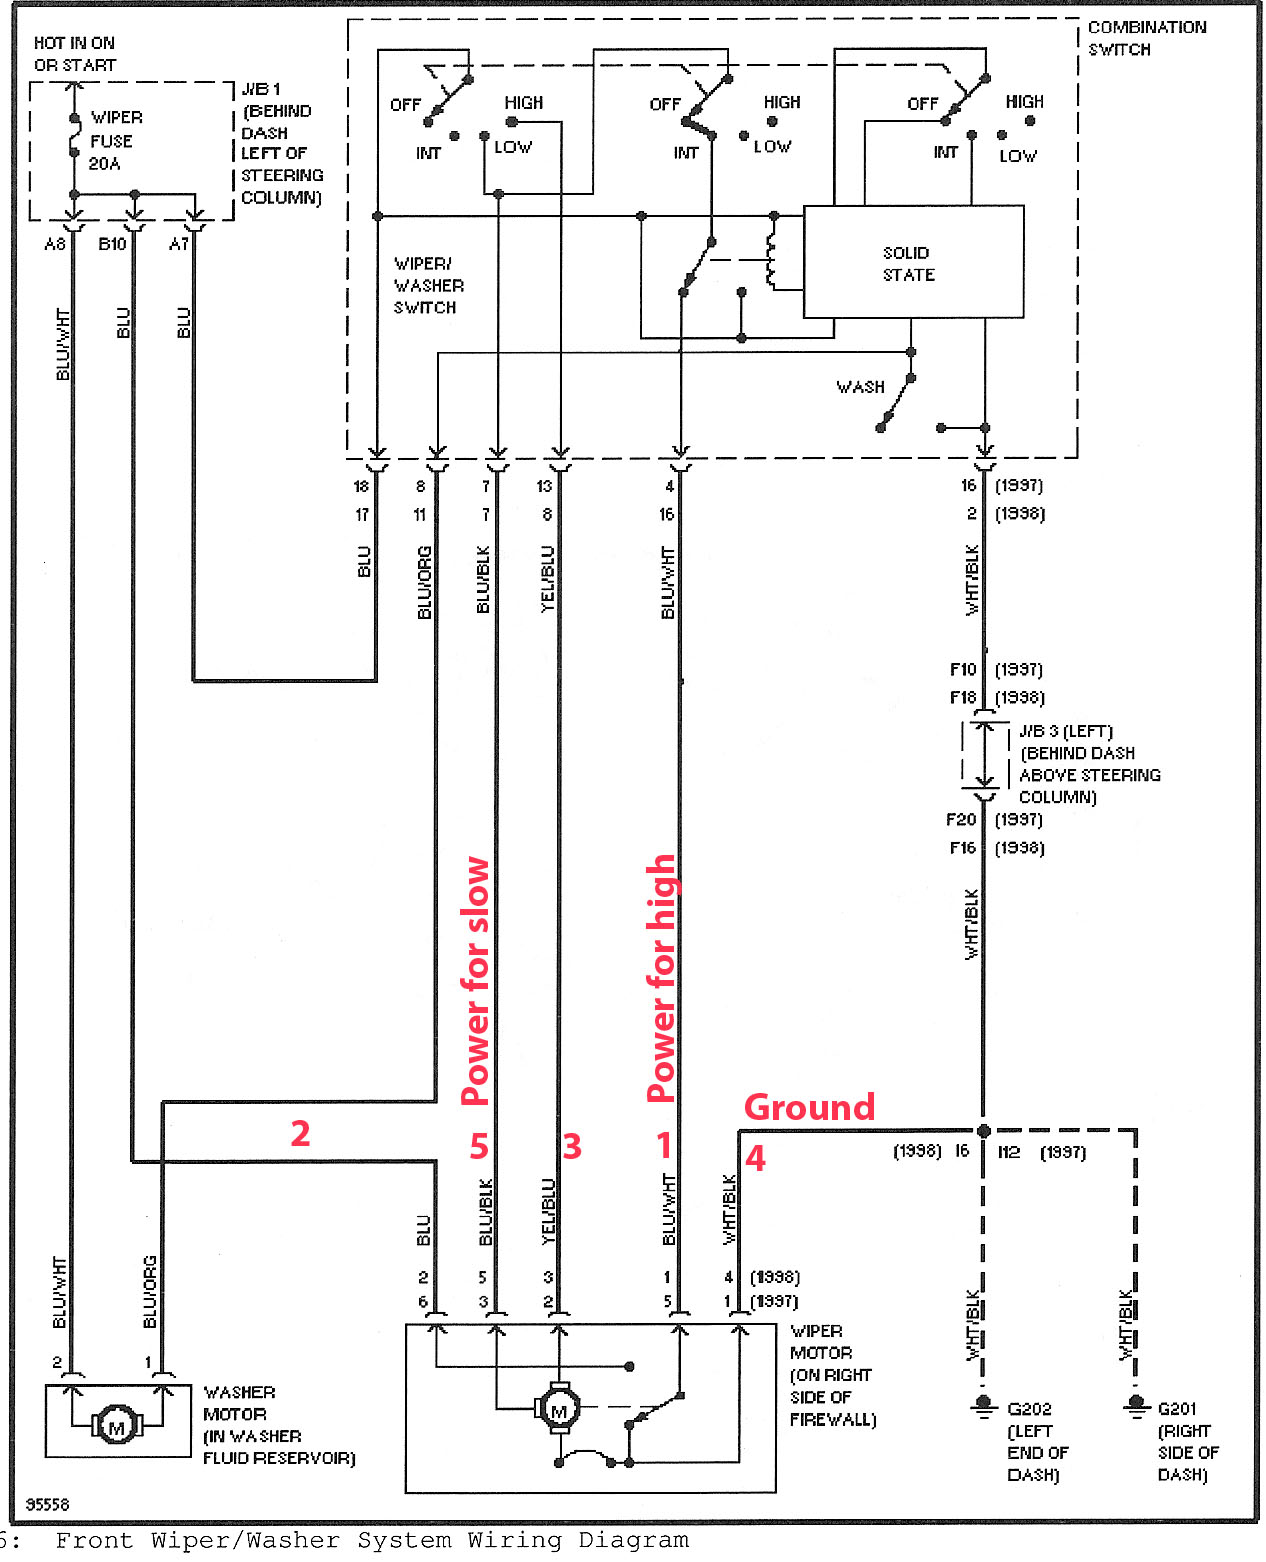 Wiring Diagram 2001 F250 6 8 Great Design Of 2003 Ford F 250 1997 Buick Park Avenue 3 8l Fi Ohv 6cyl Repair Guides 2004 2002